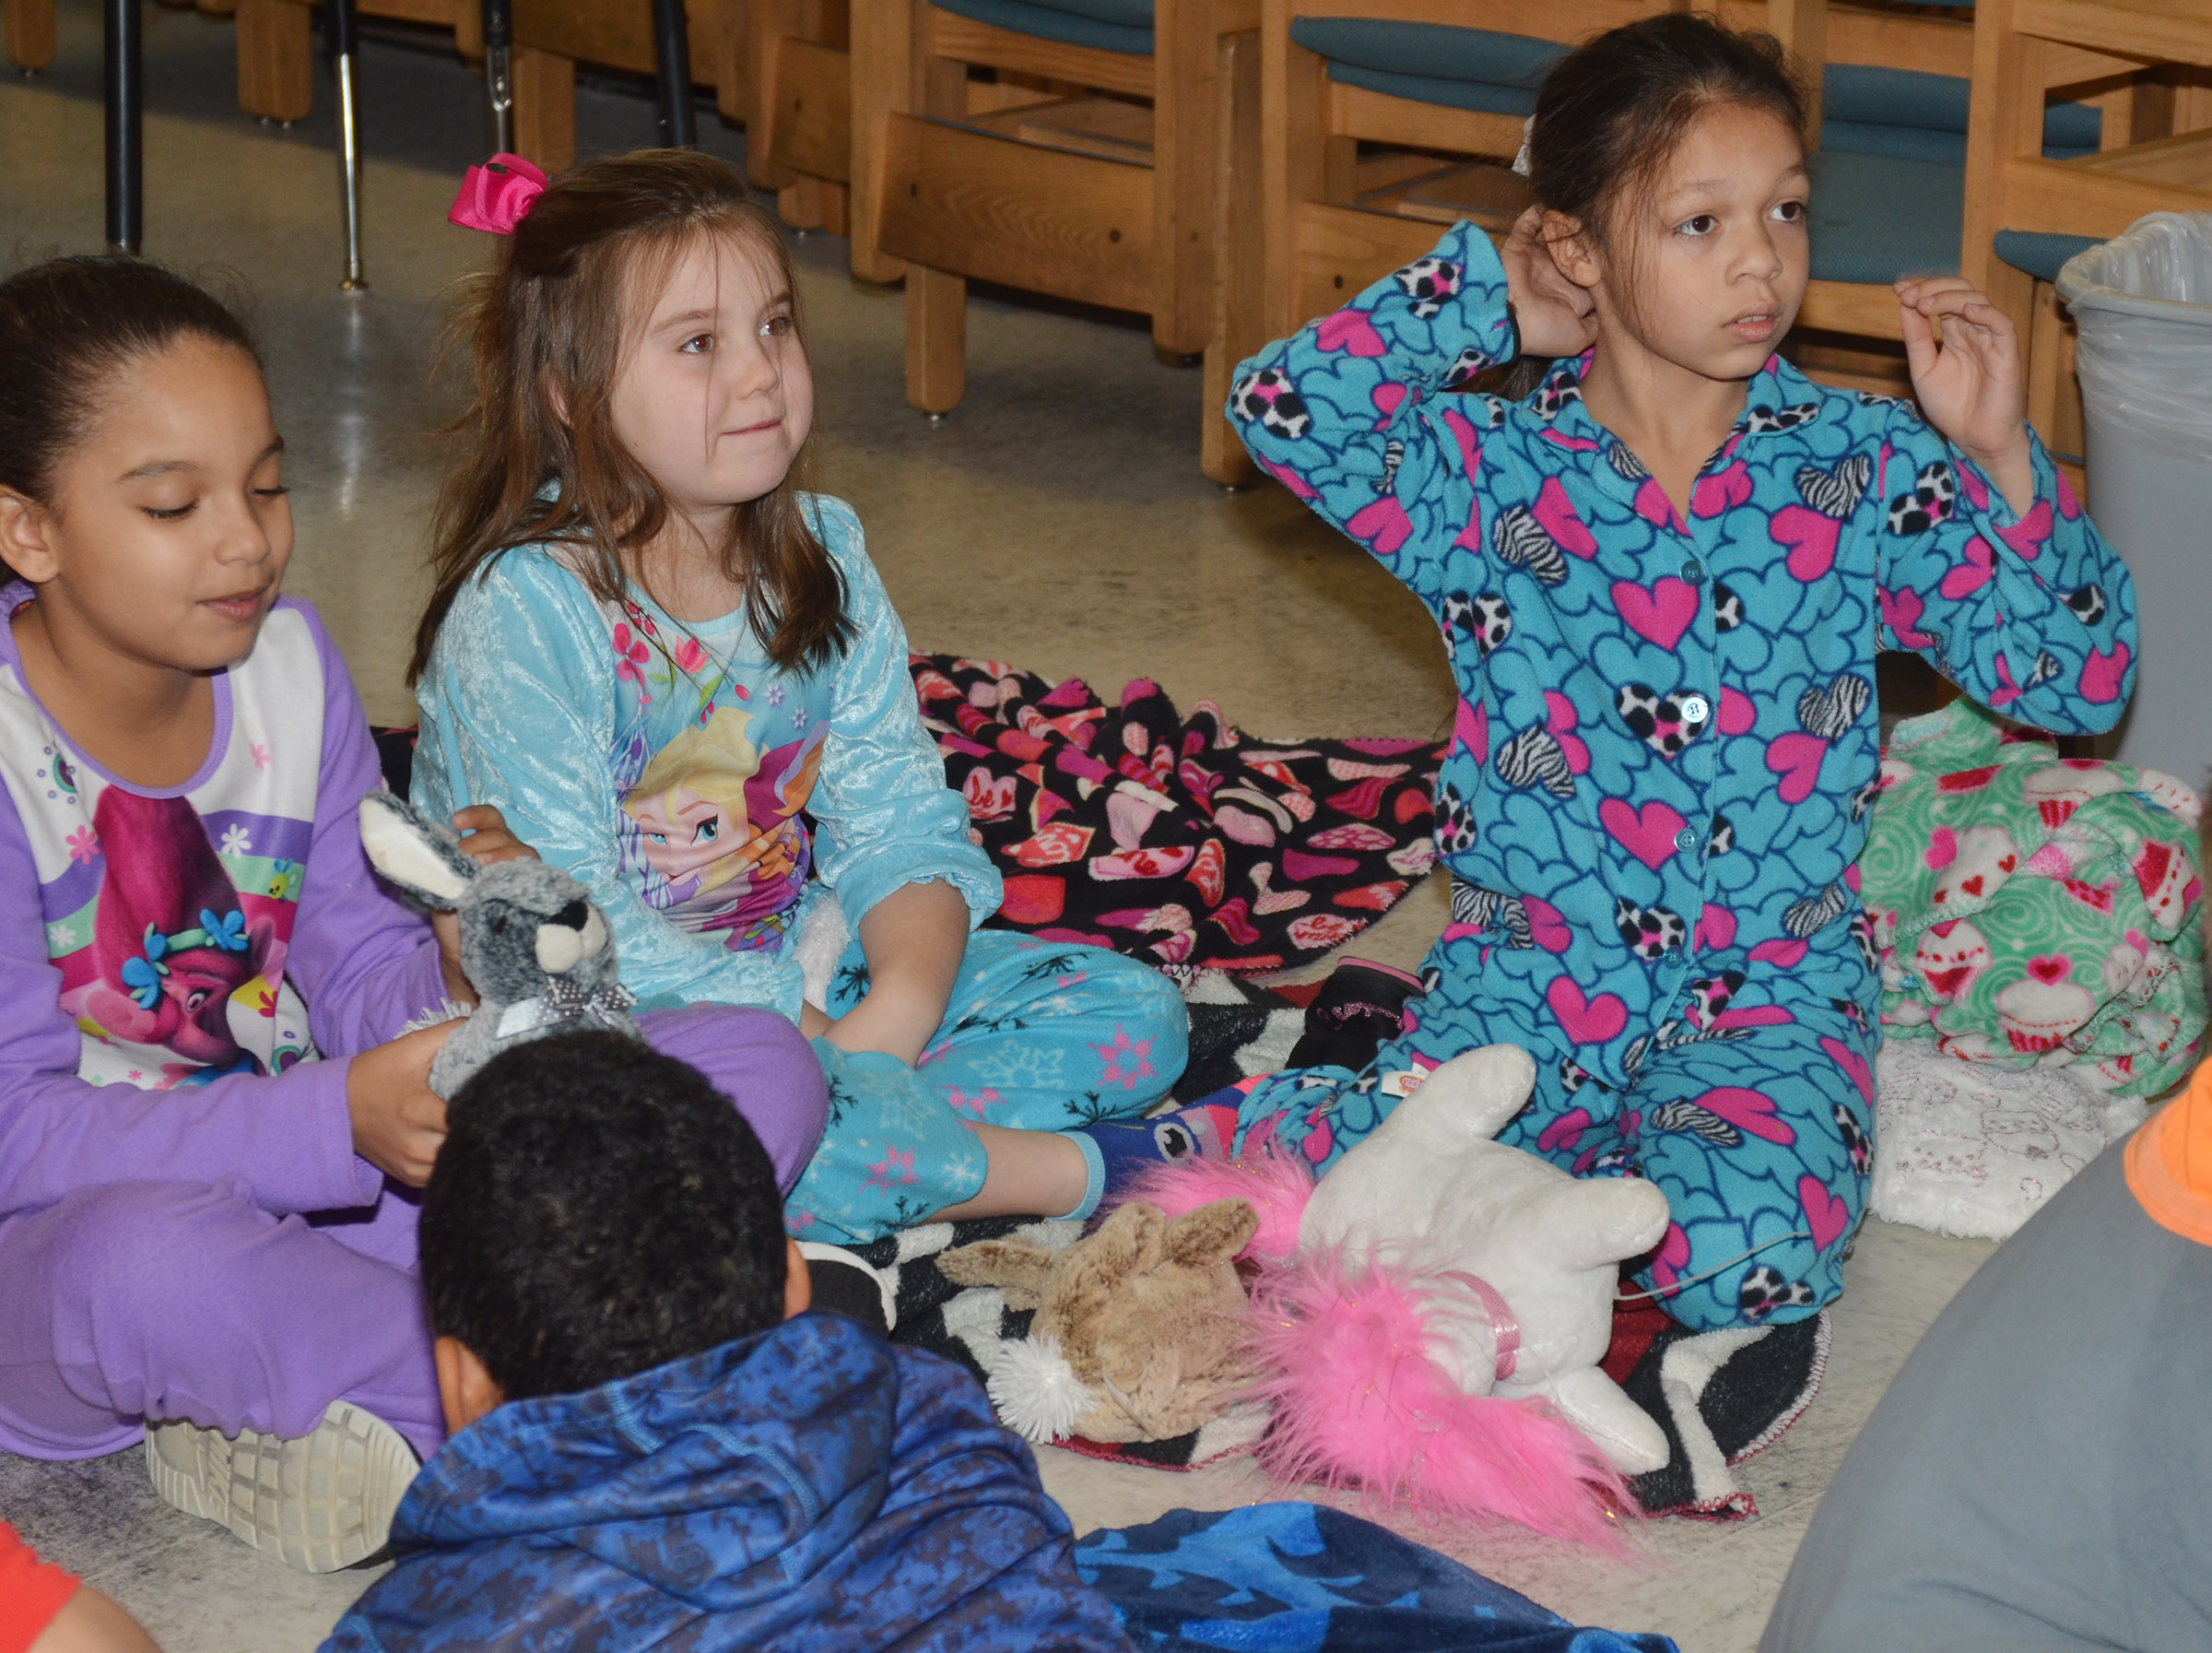 CES third-graders, from left, Aleecia Knezevic, Maylee Wilds and Breona Bridgewater sit together on their blankets as they watch a movie together.